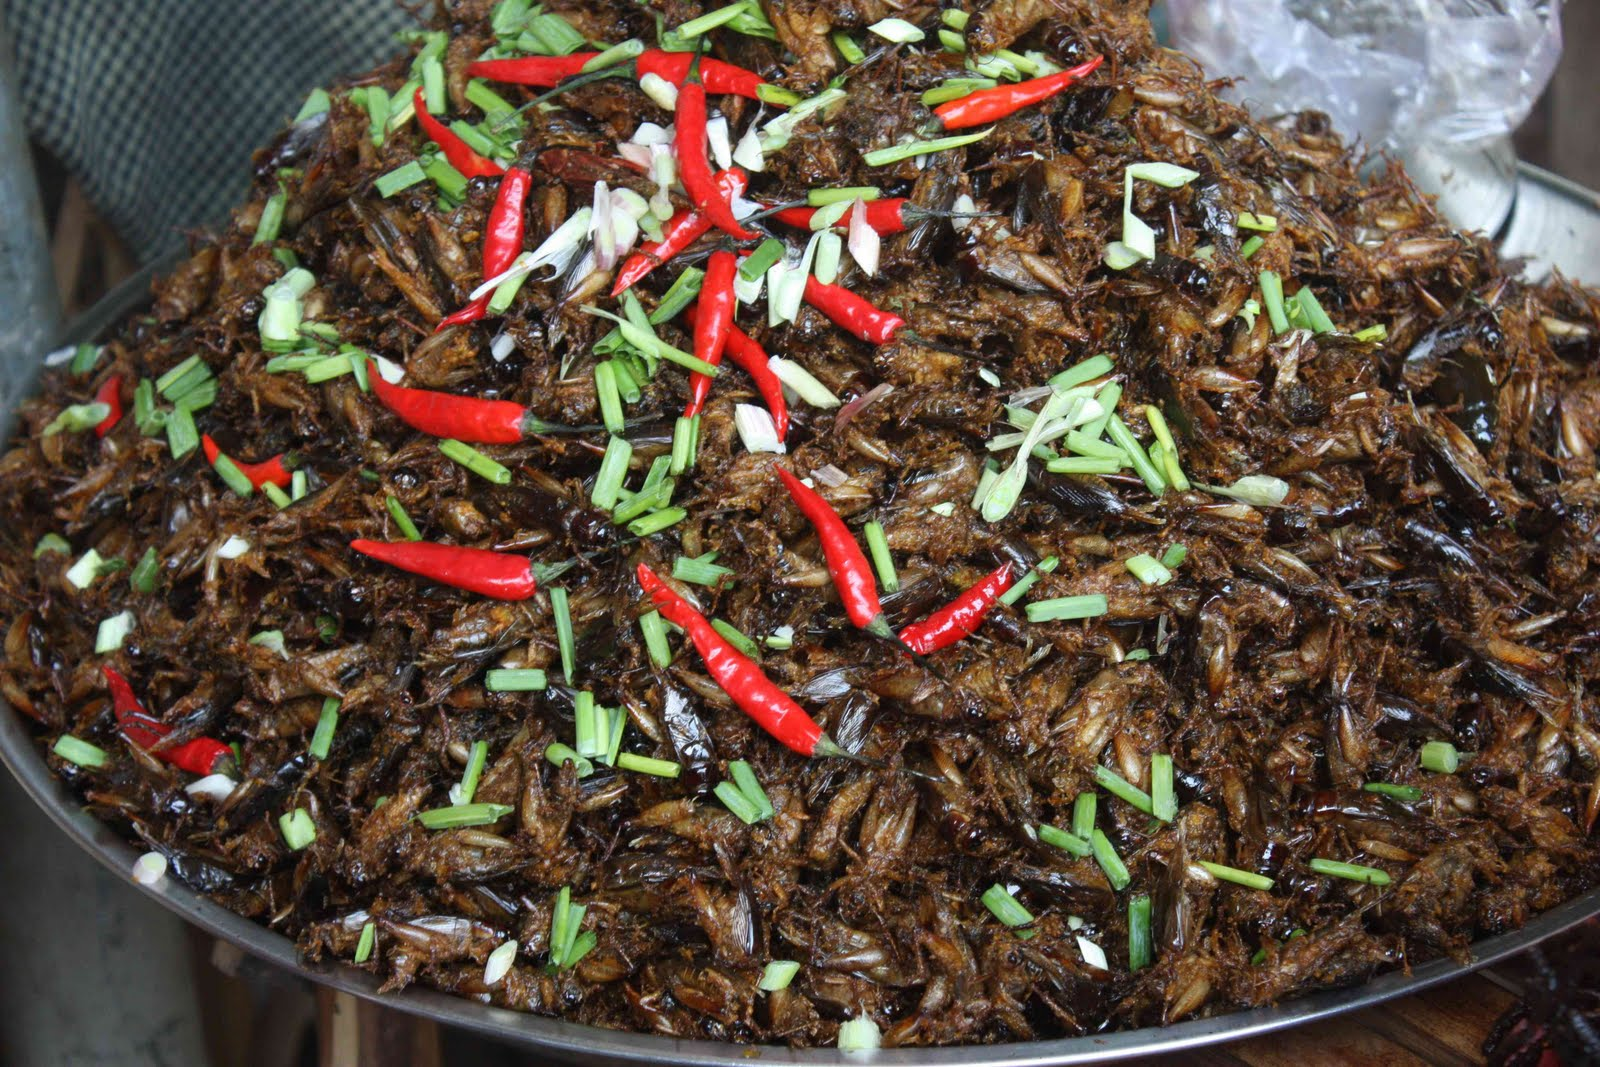 Crickets are fried with chili, a tasty food in Siem Reap's restaurants